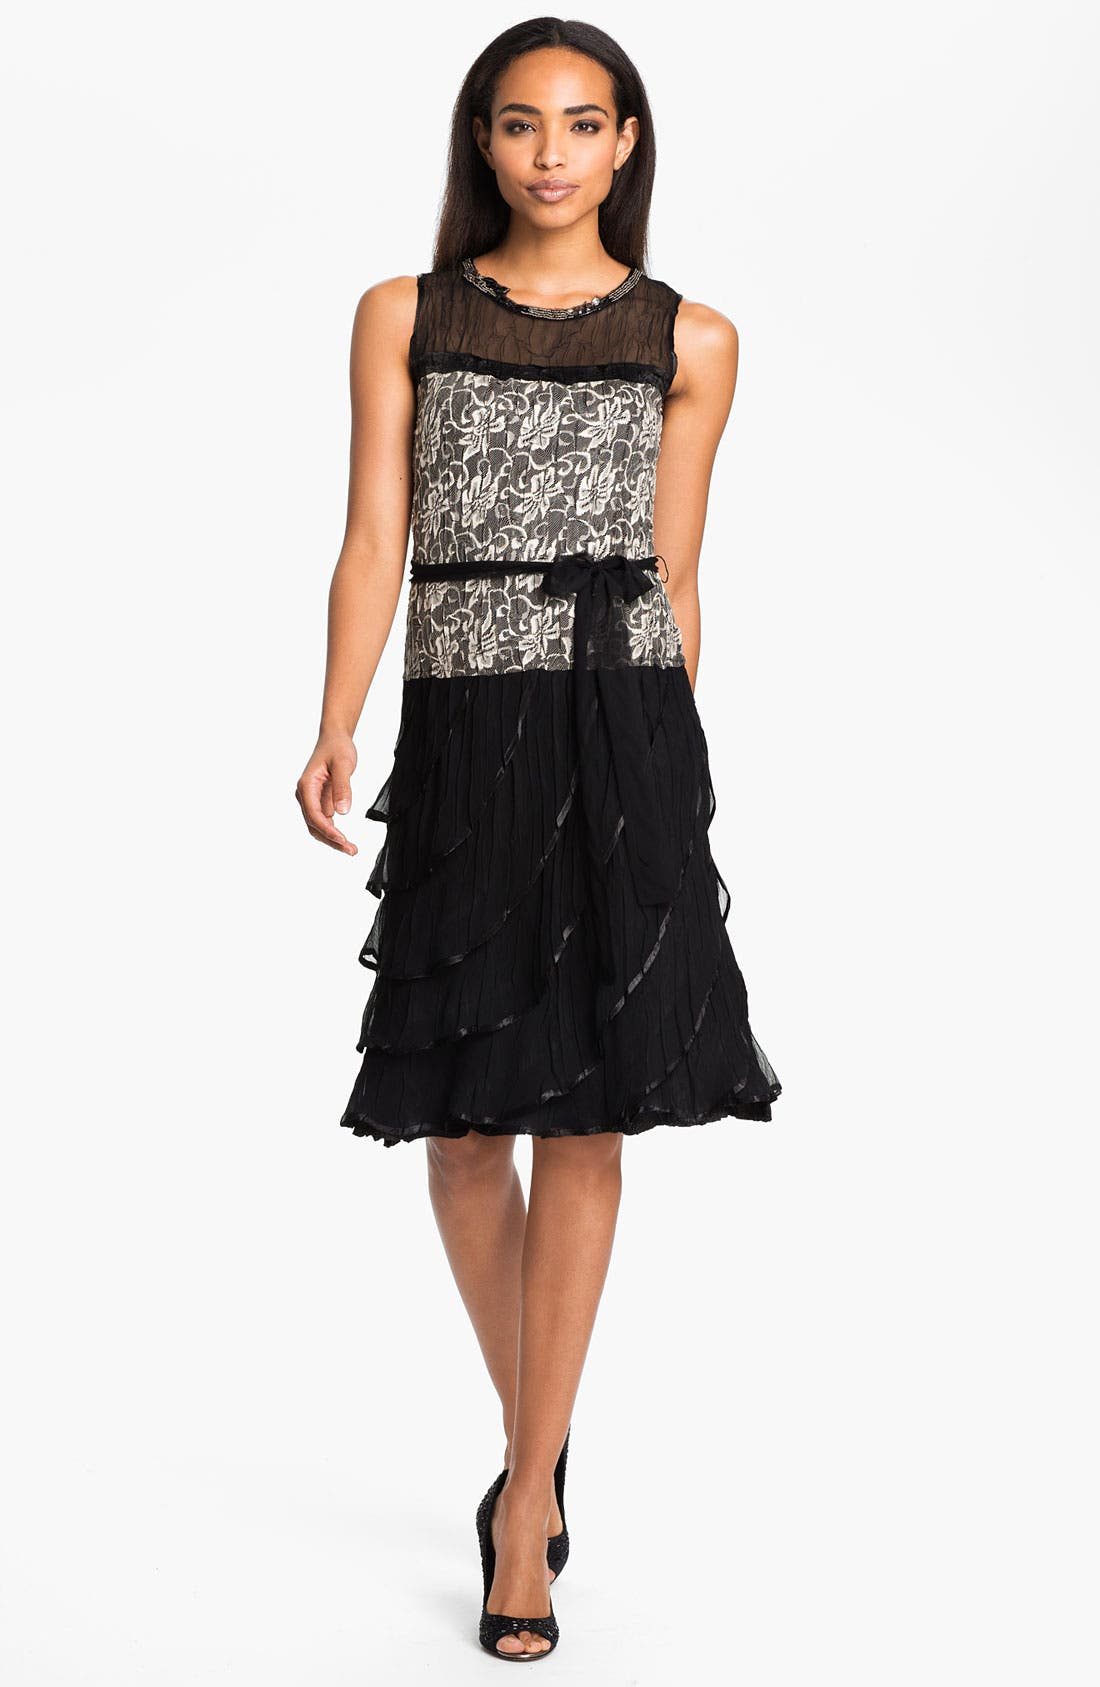 Alternate Image 1 Selected - Black by Komarov Lace & Chiffon Dress